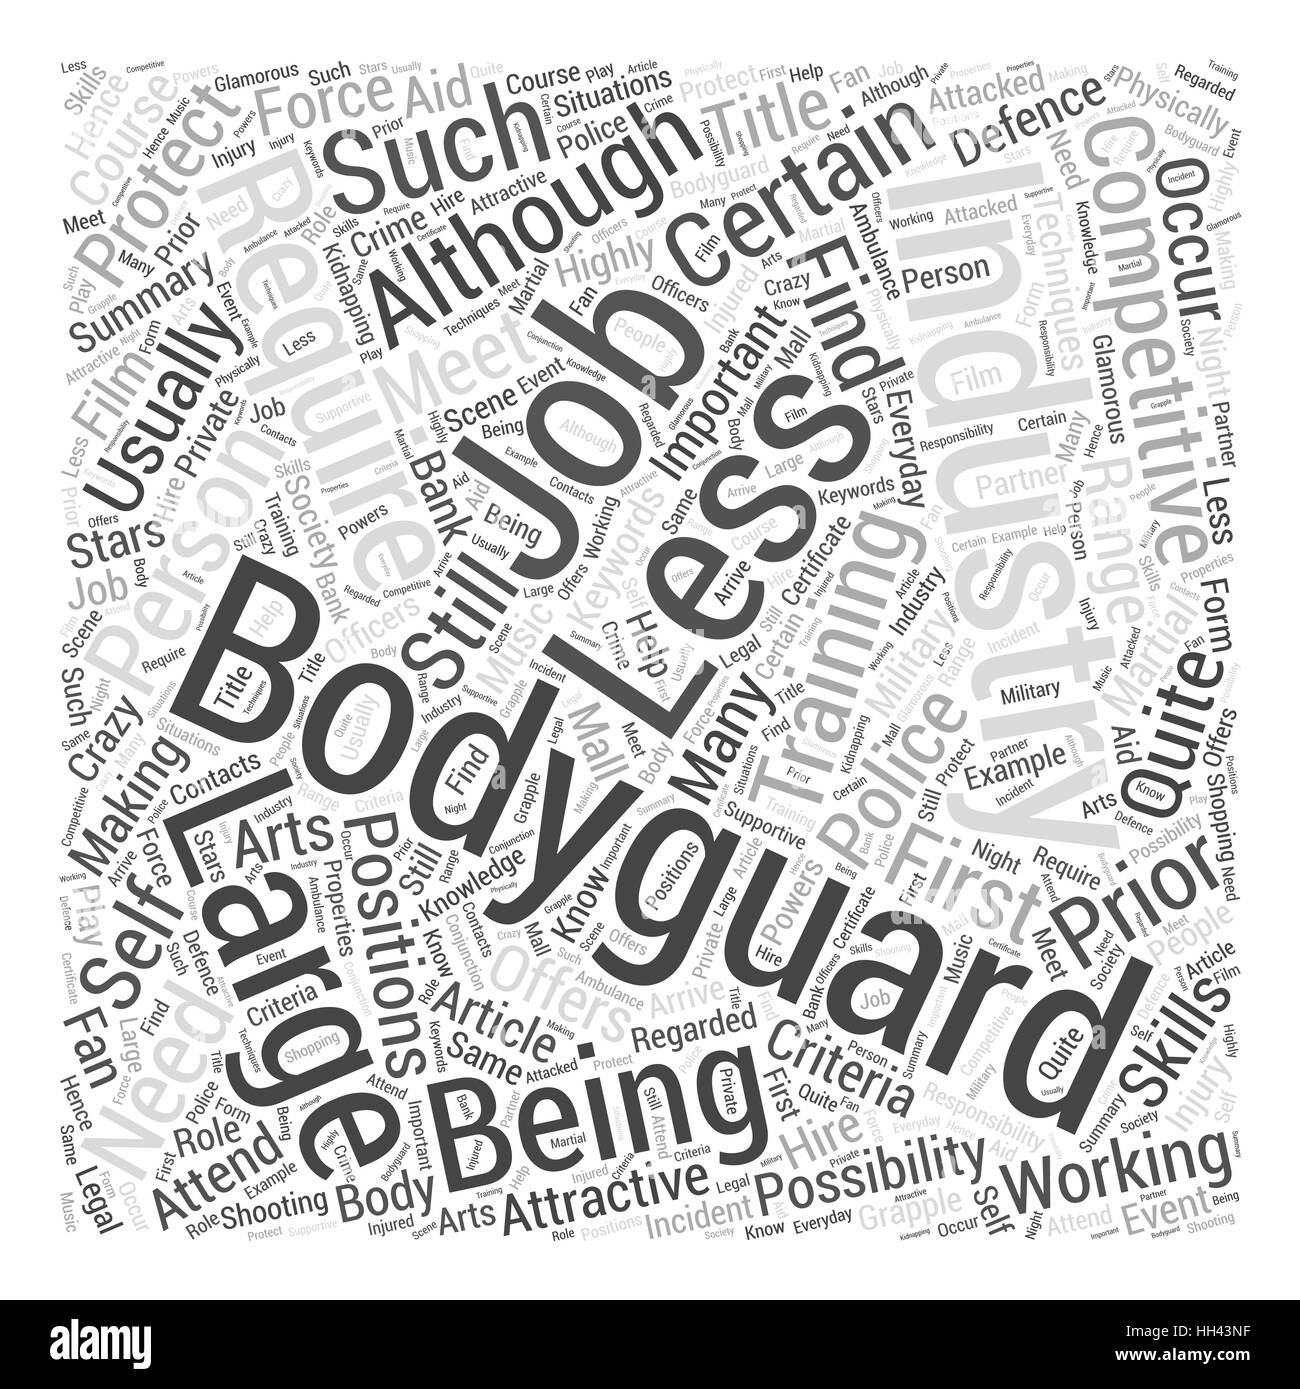 Bodyguard Jobs Word Cloud Concept - Stock Image